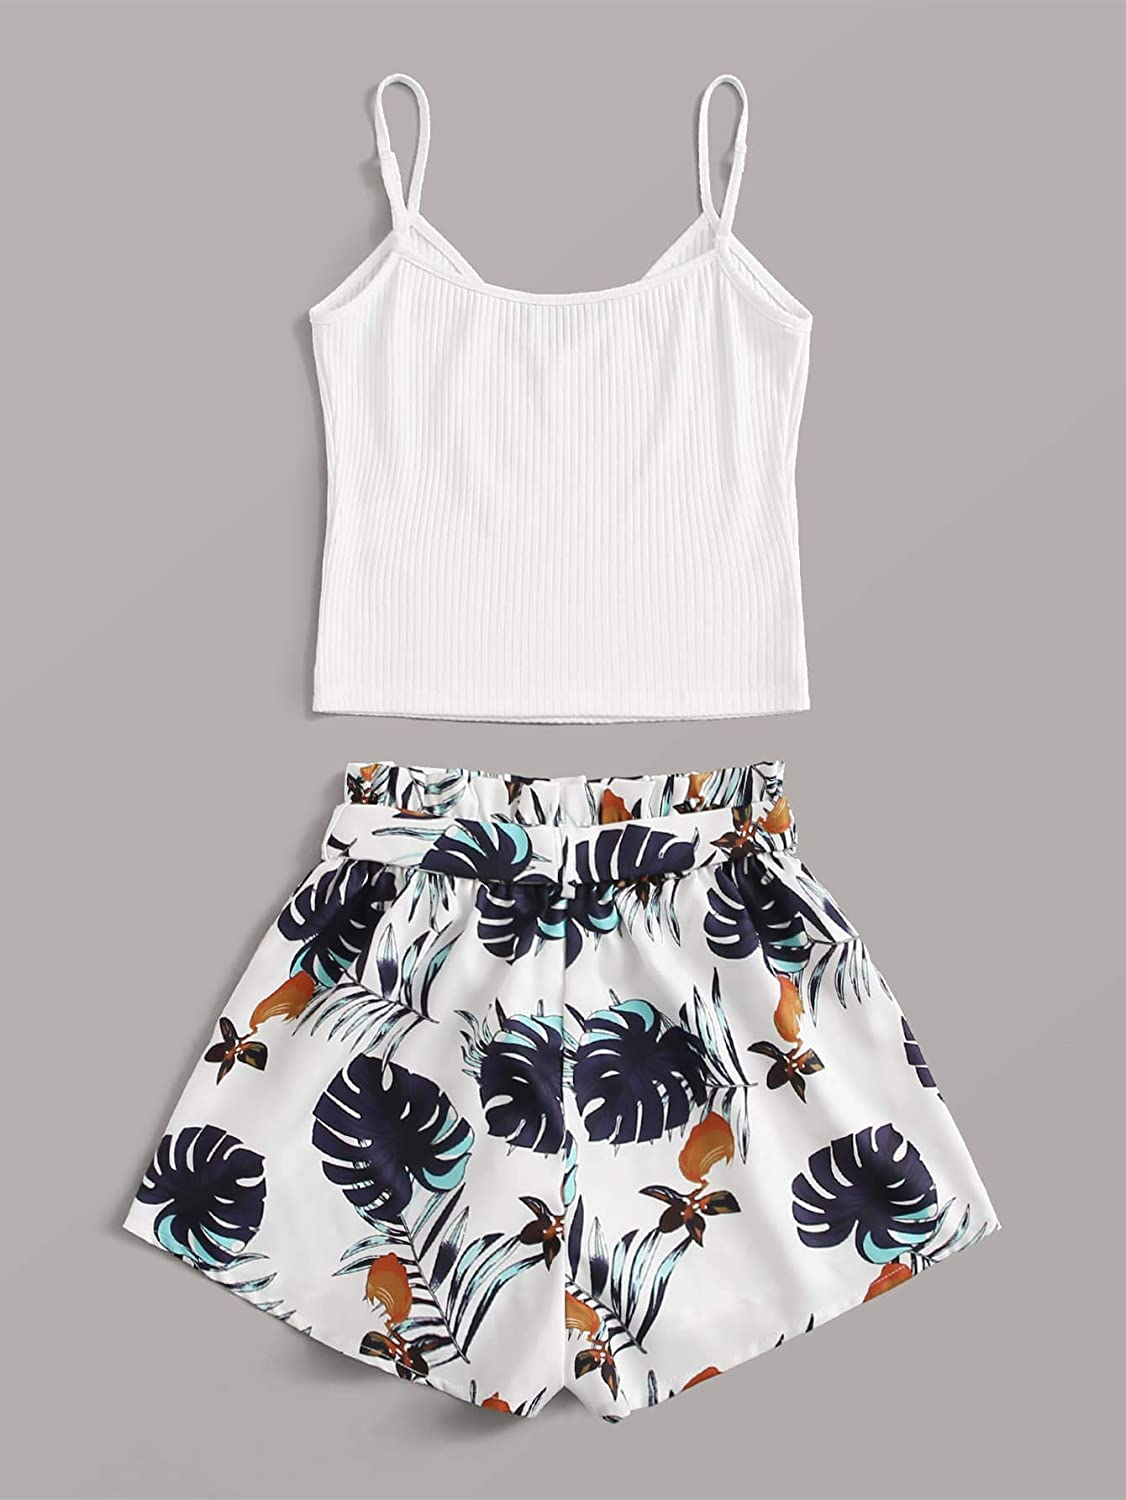 SheIn Womens Sleeveless Solid Cami Tops and Tie Knotted Jungle Leaf Shorts Sets